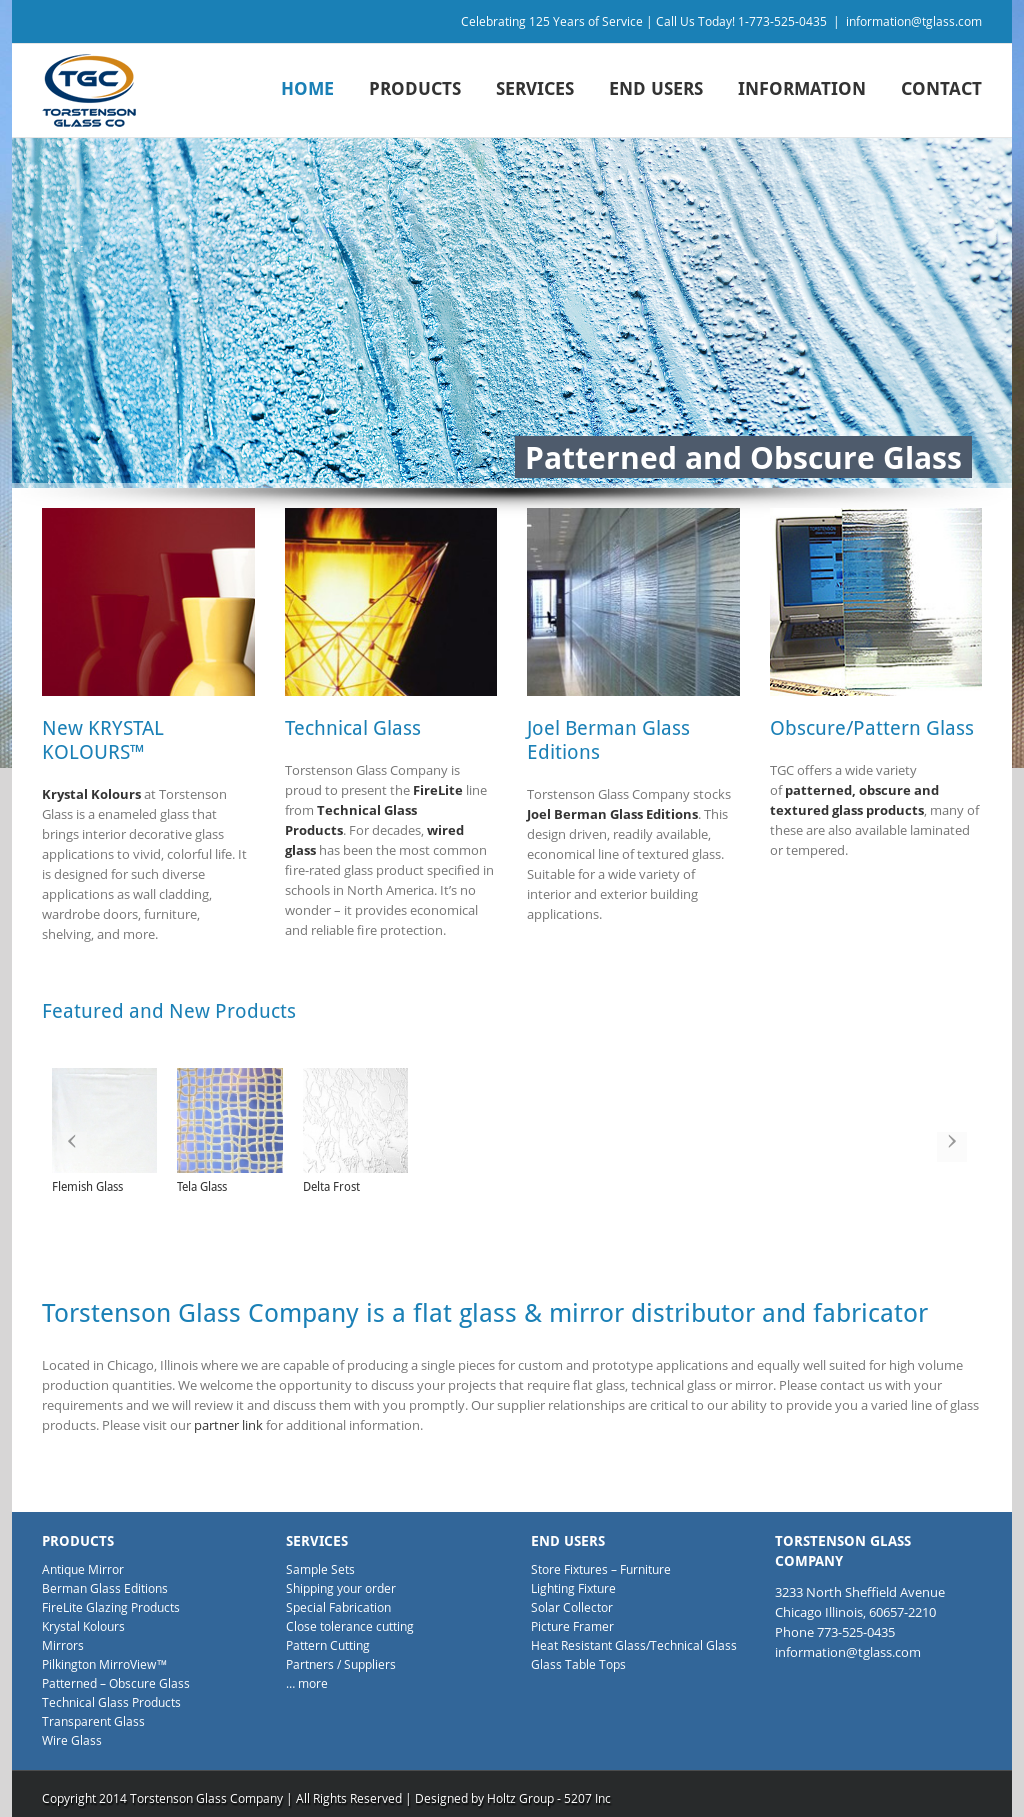 Torstenson Glass Competitors, Revenue and Employees - Owler Company ...